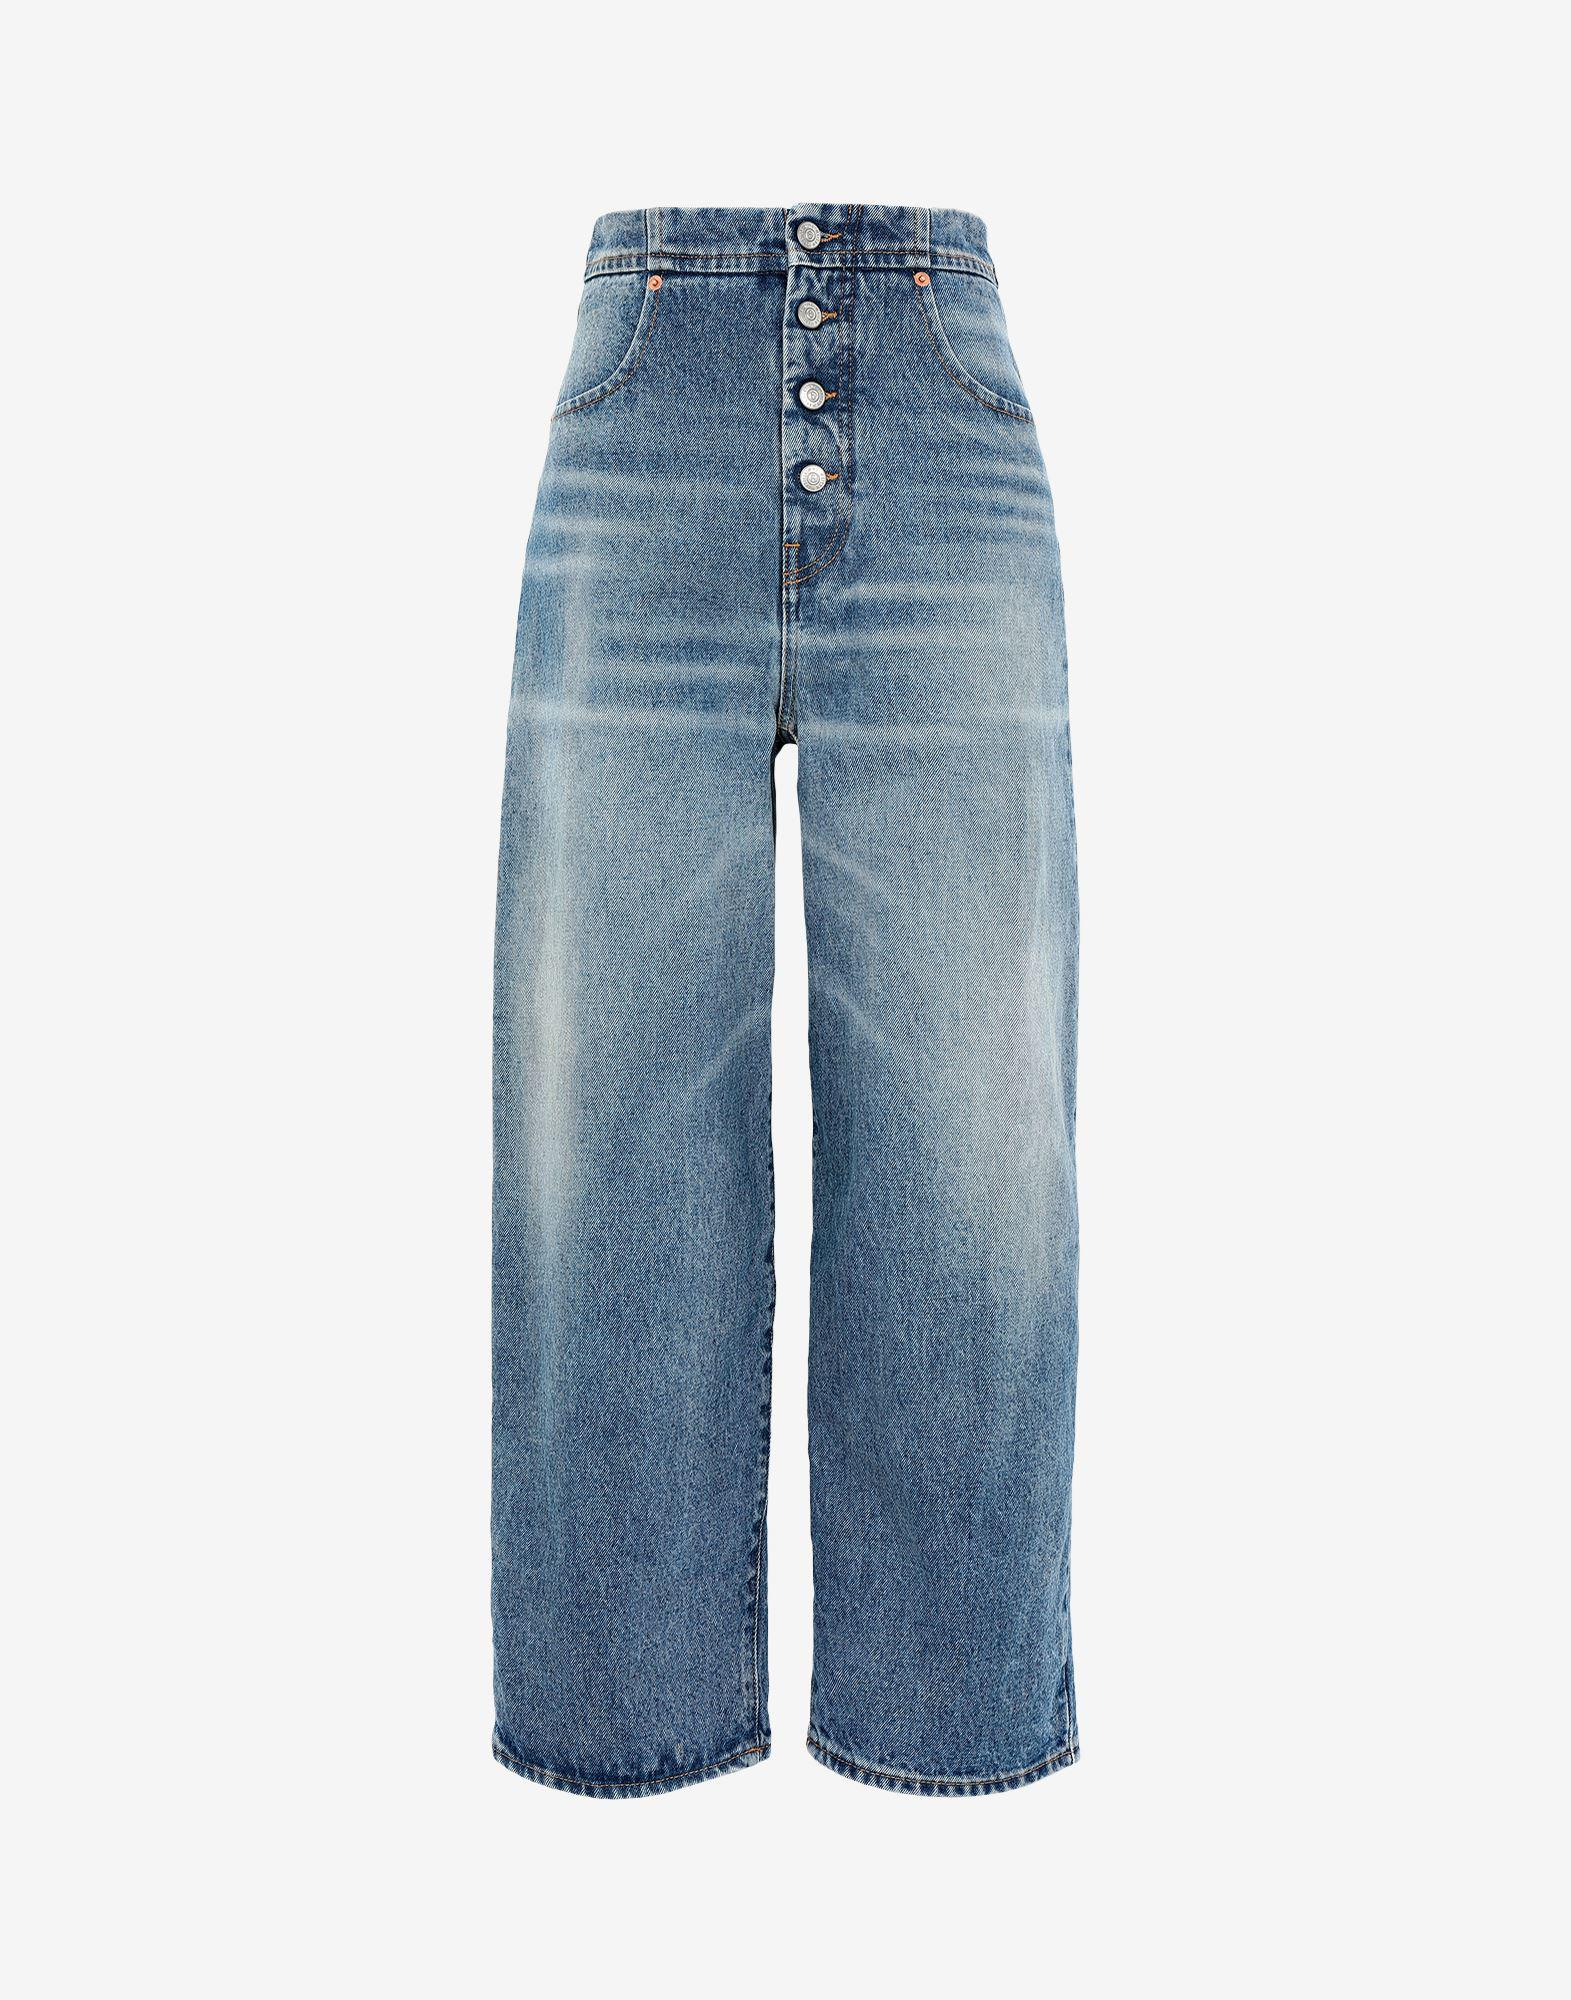 Carrot jeans 4